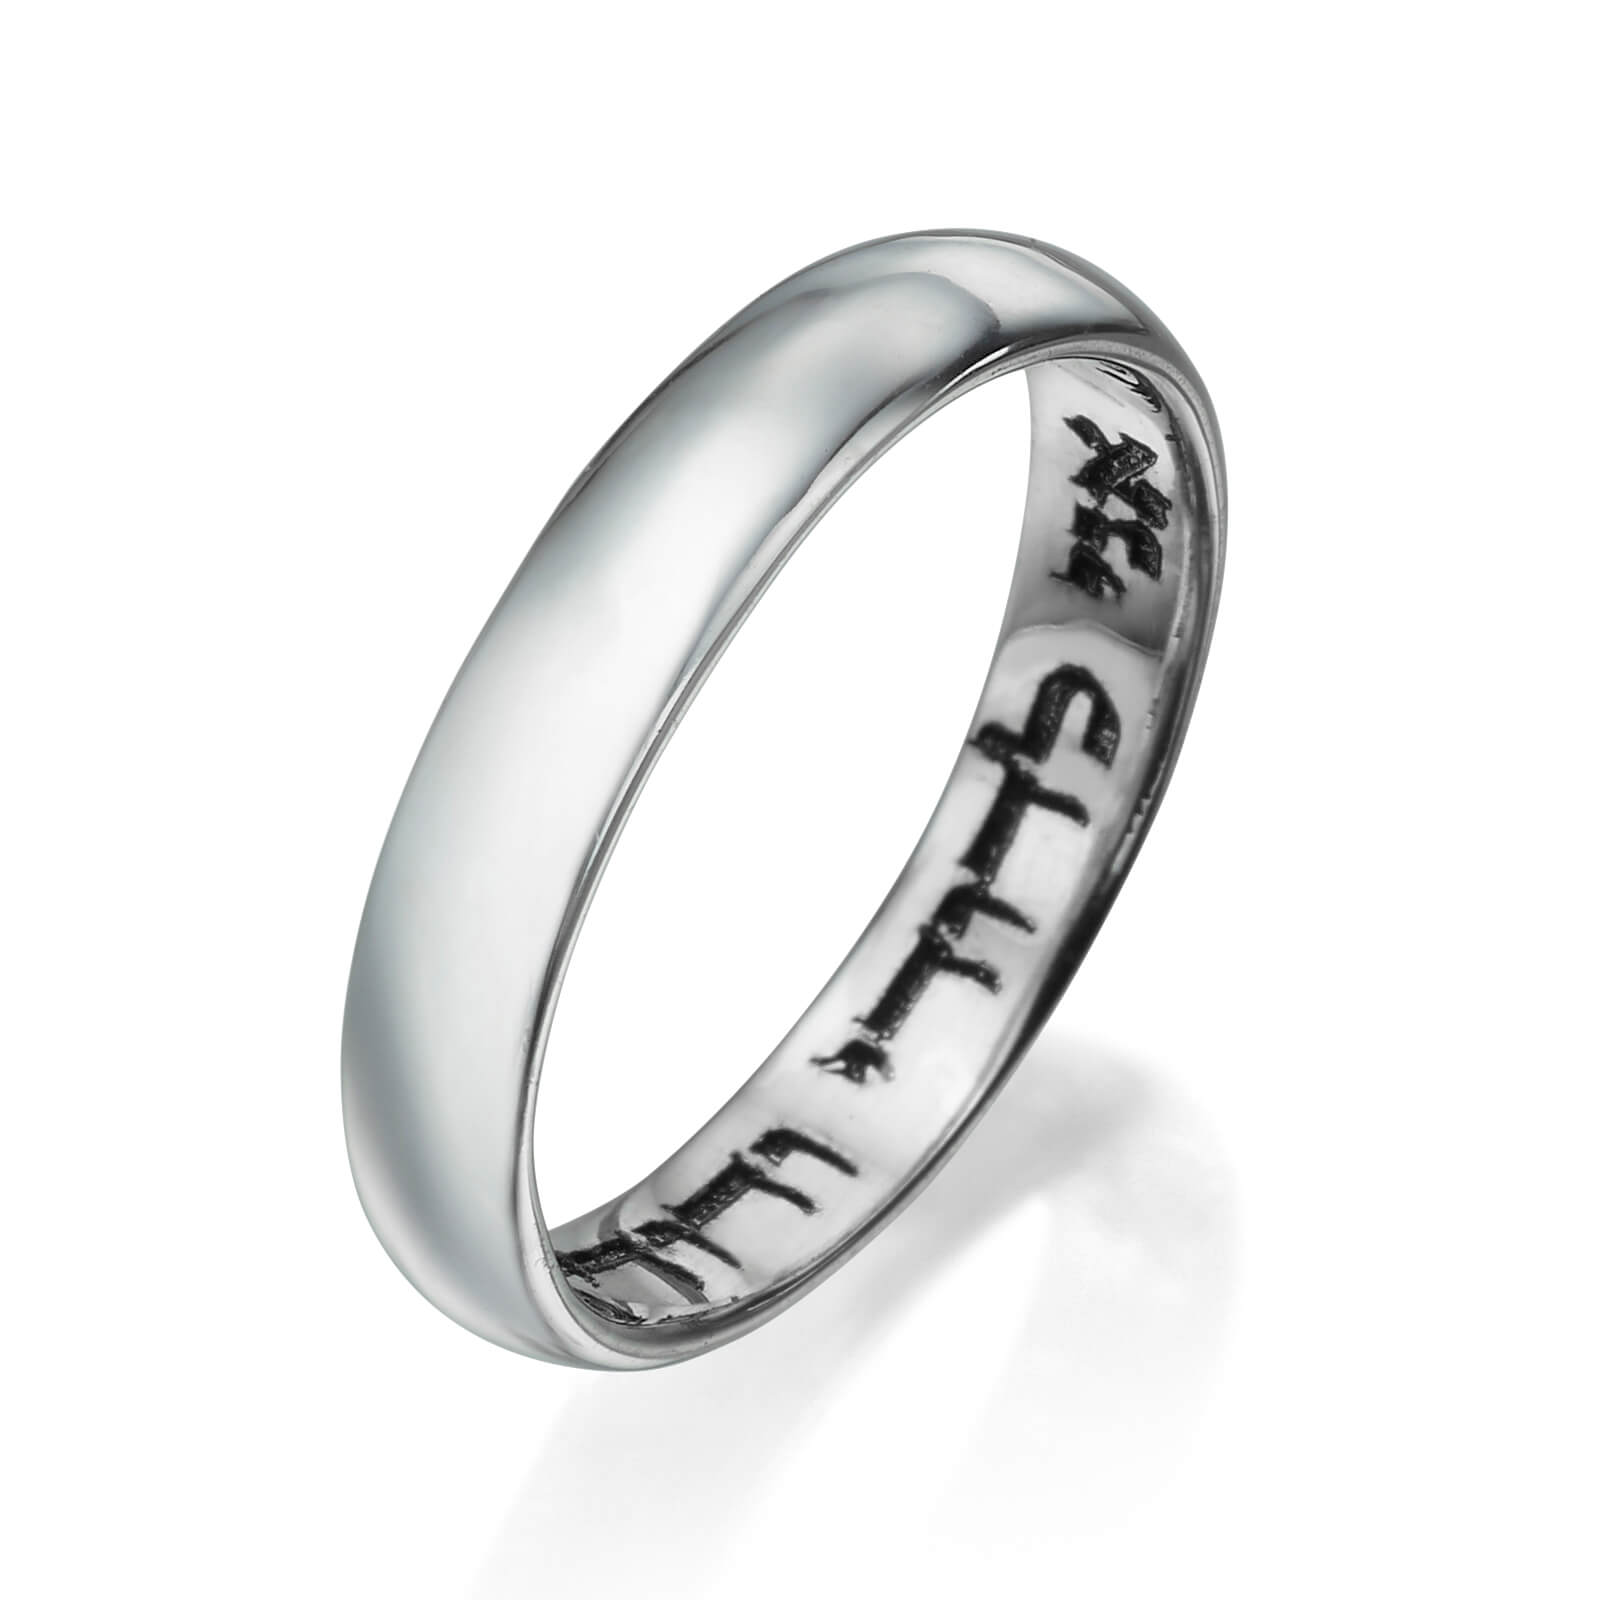 14k White Gold Engraved Hebrew Wedding Band - Baltinester Jewelry